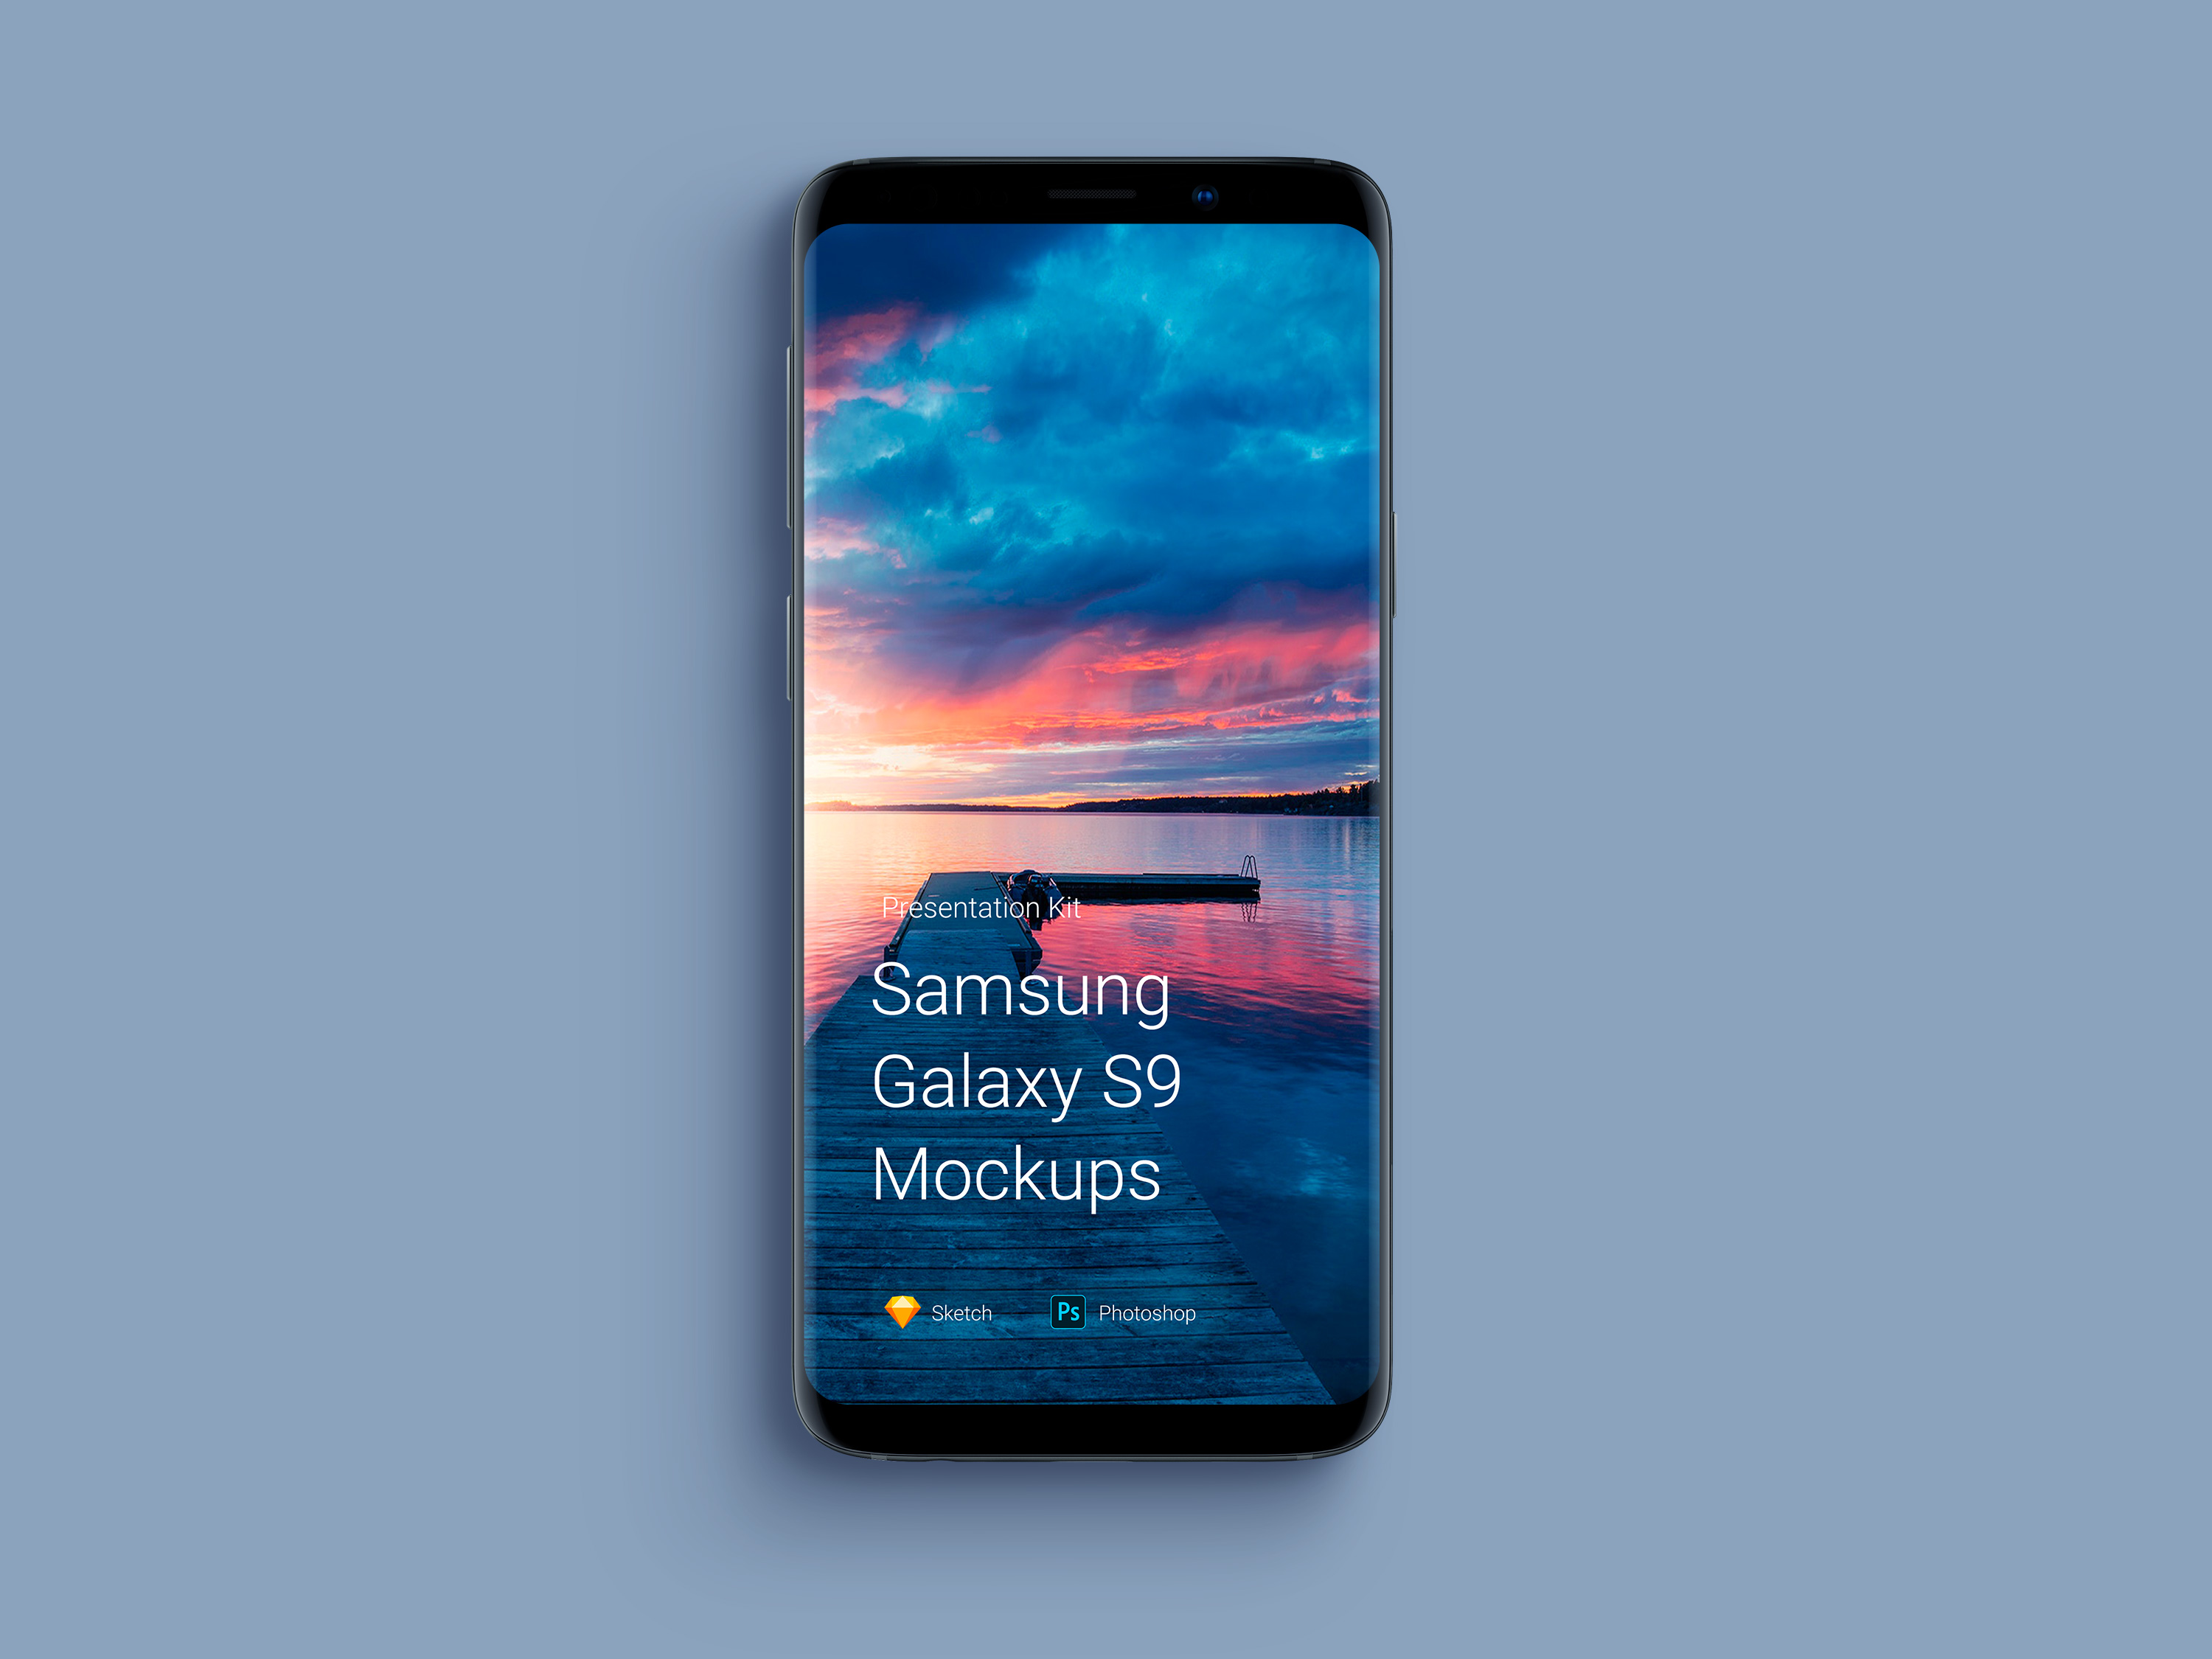 Download Samsung Galaxy S9 Mockup for Sketch and Photoshop